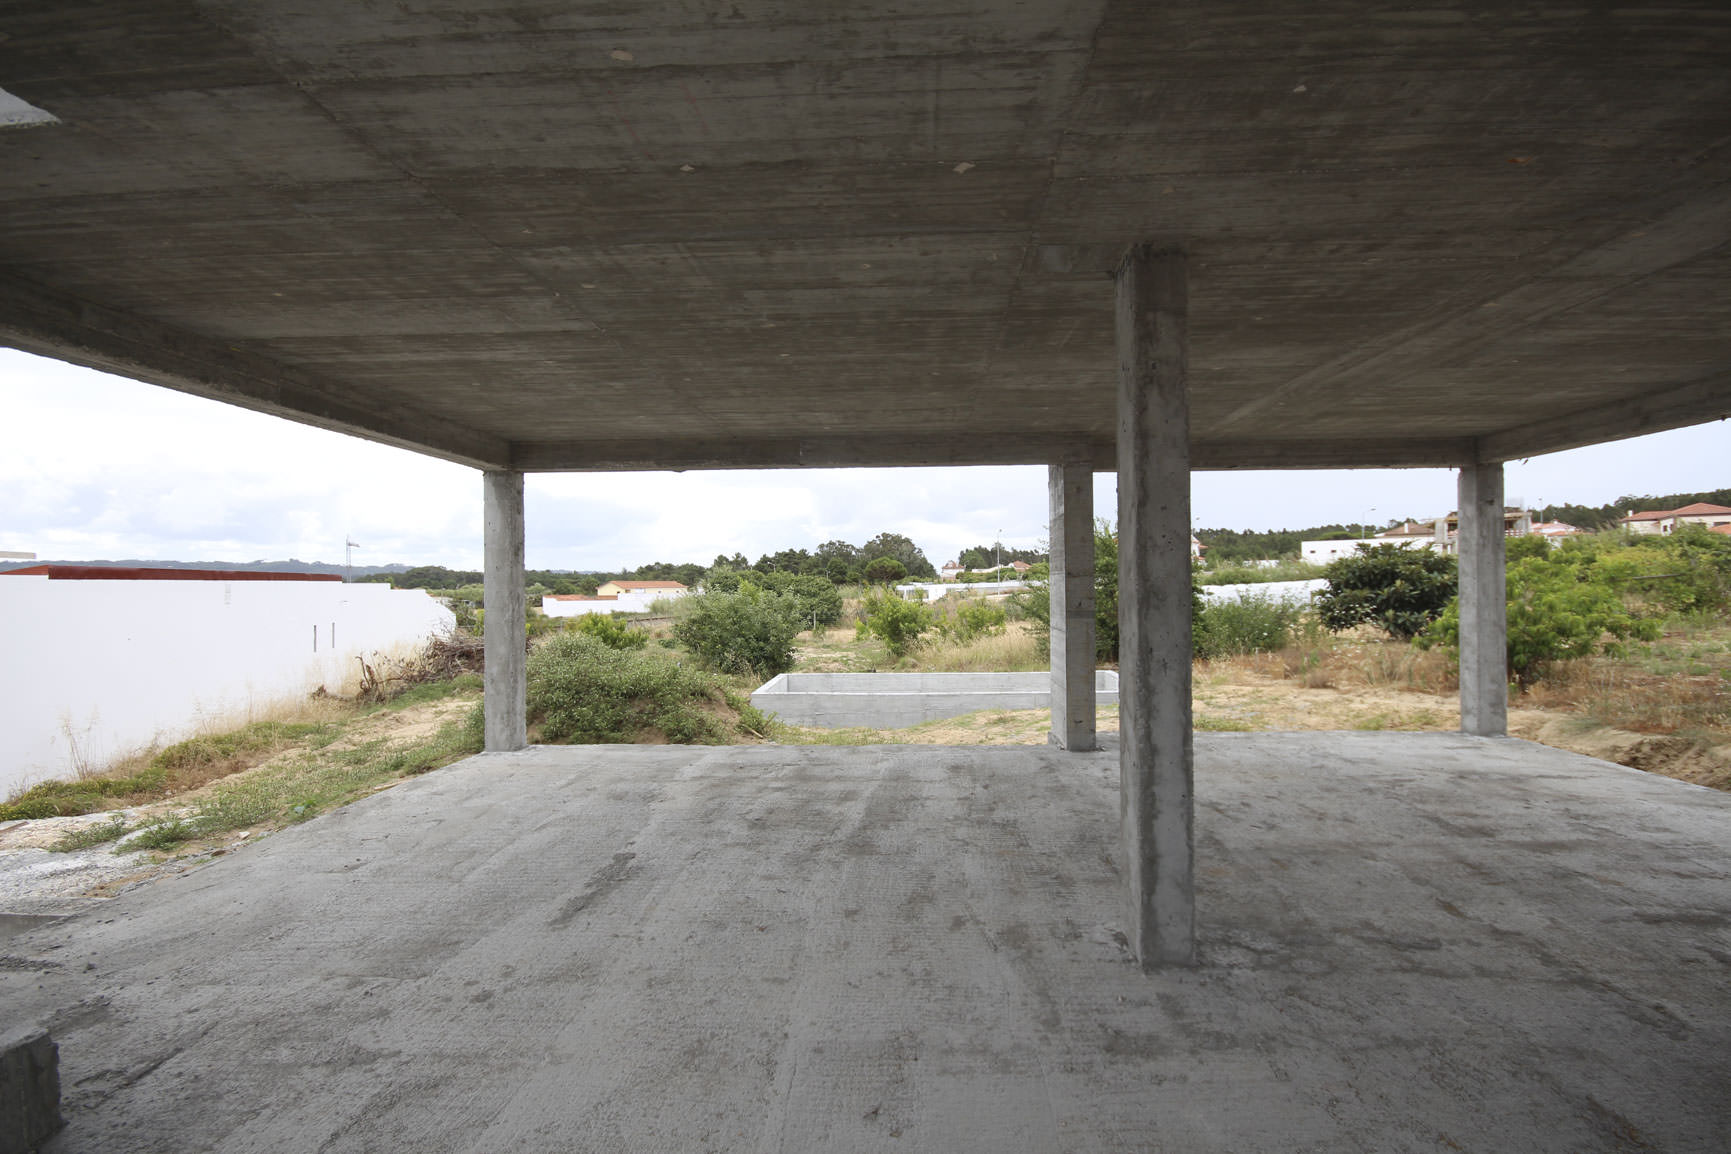 08-portugal-realty-silver-coast-property-for-sale-presprop-contsruction-new-build